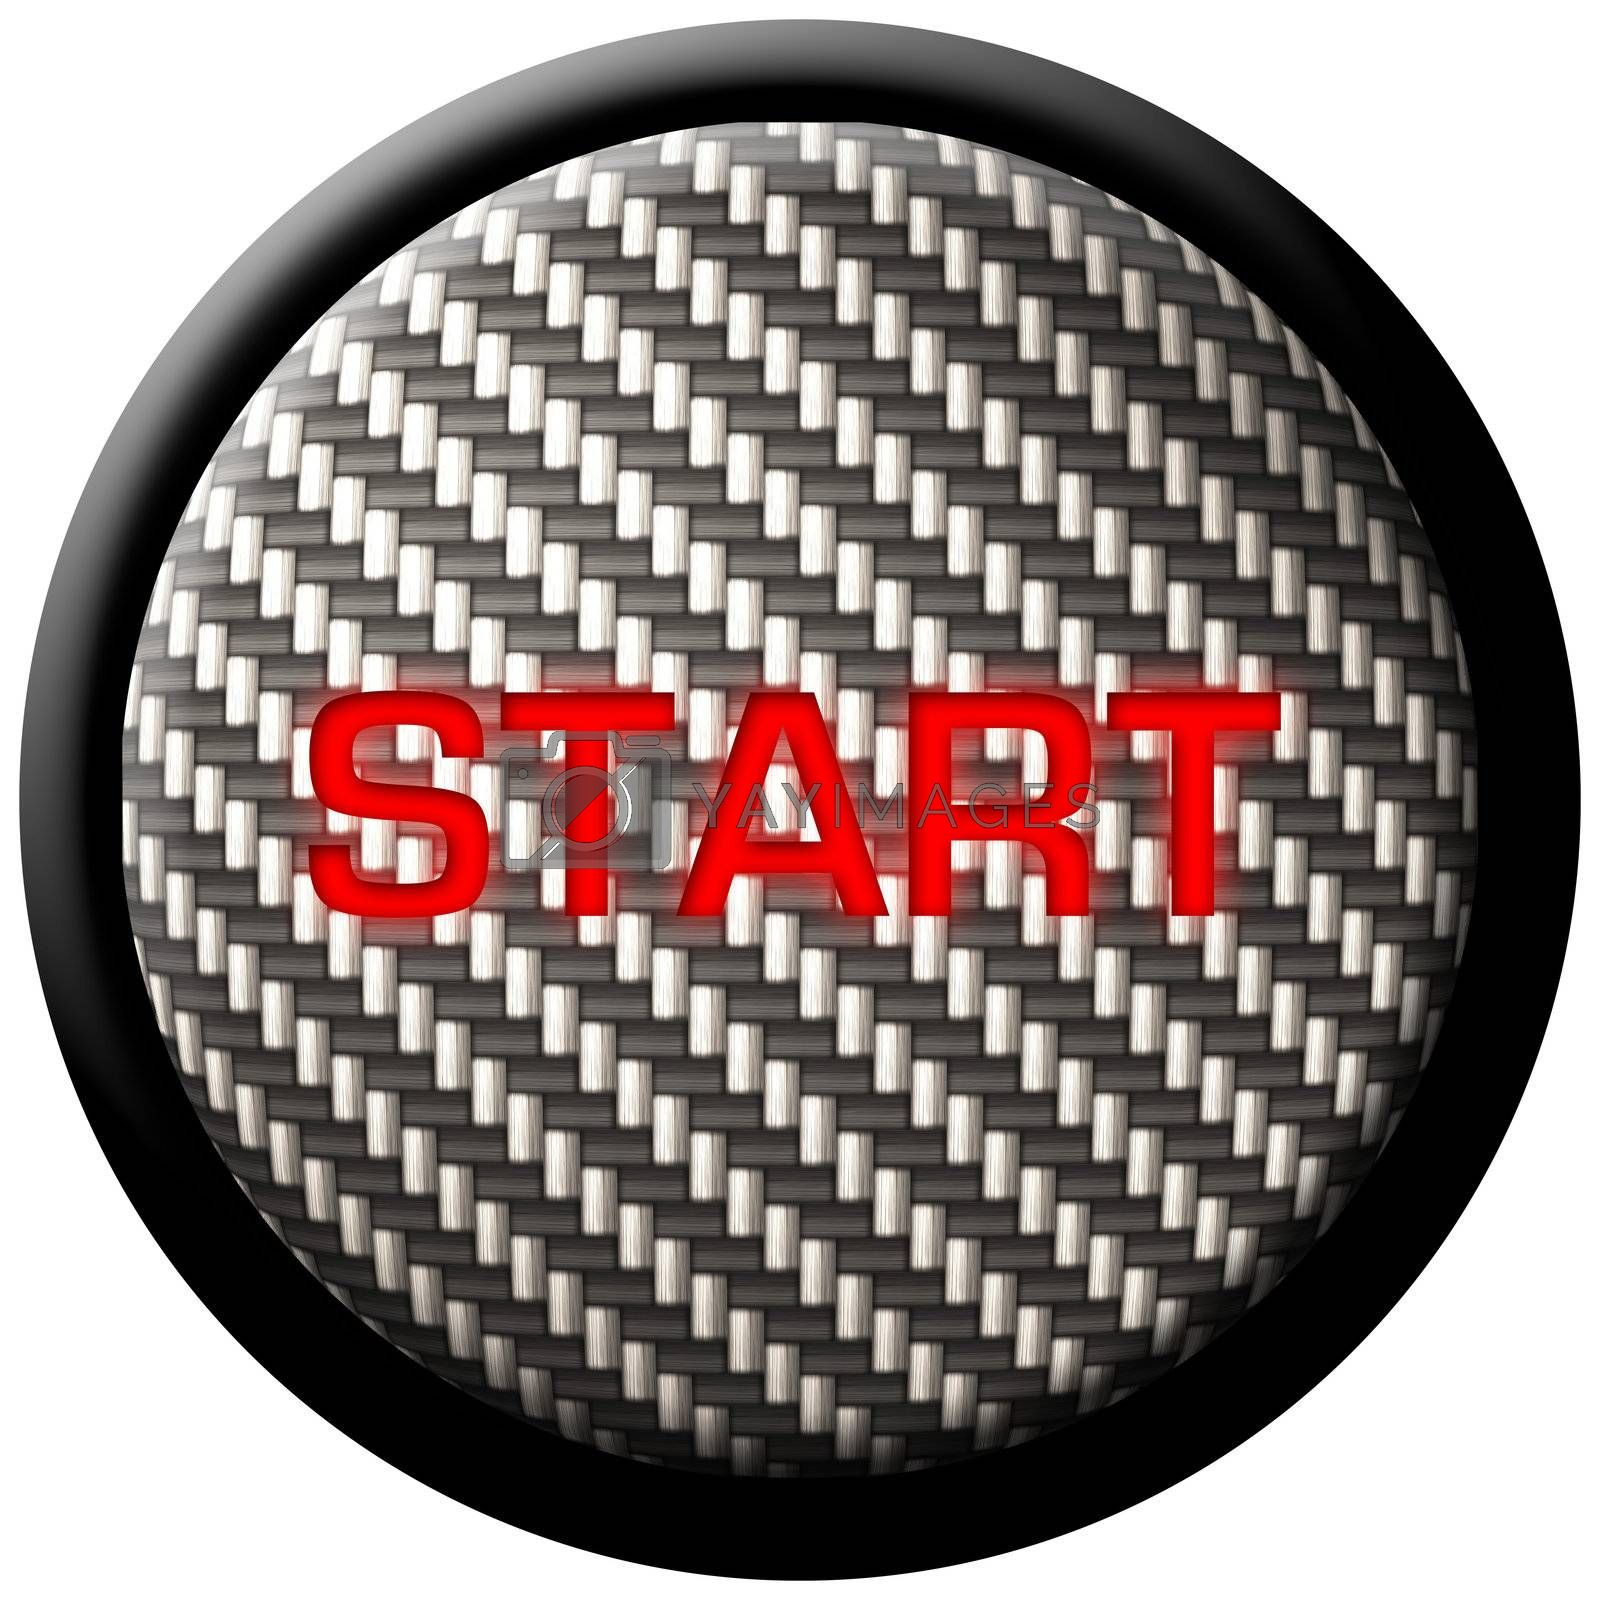 """A carbon fiber start button with the word """"start"""" glowing in red.  These types of buttons have become very popular in custom and high-tech automobiles."""